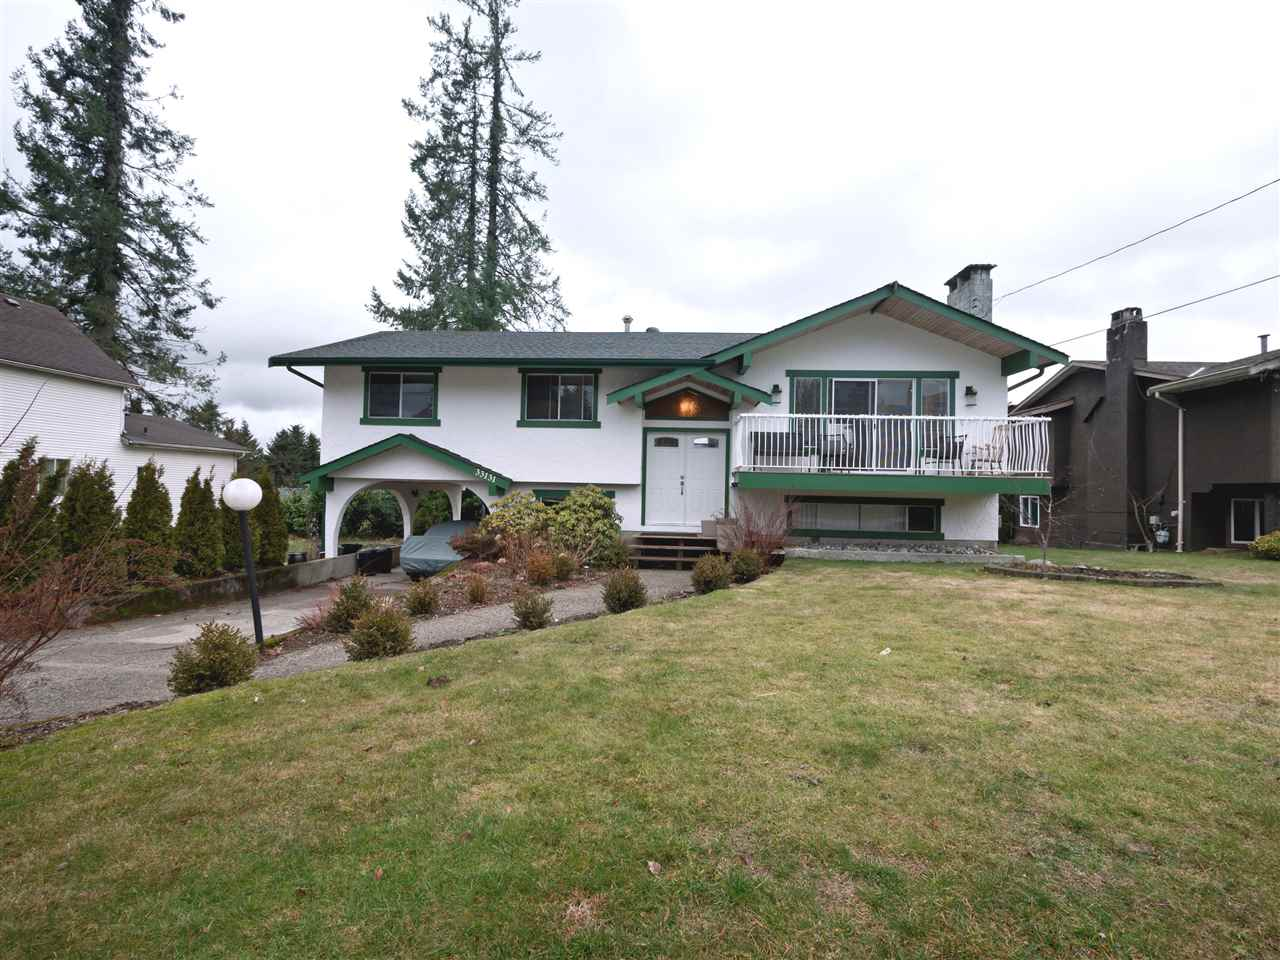 Photo 4: Photos: 33131 CHERRY Avenue in Mission: Mission BC House for sale : MLS® # R2236875